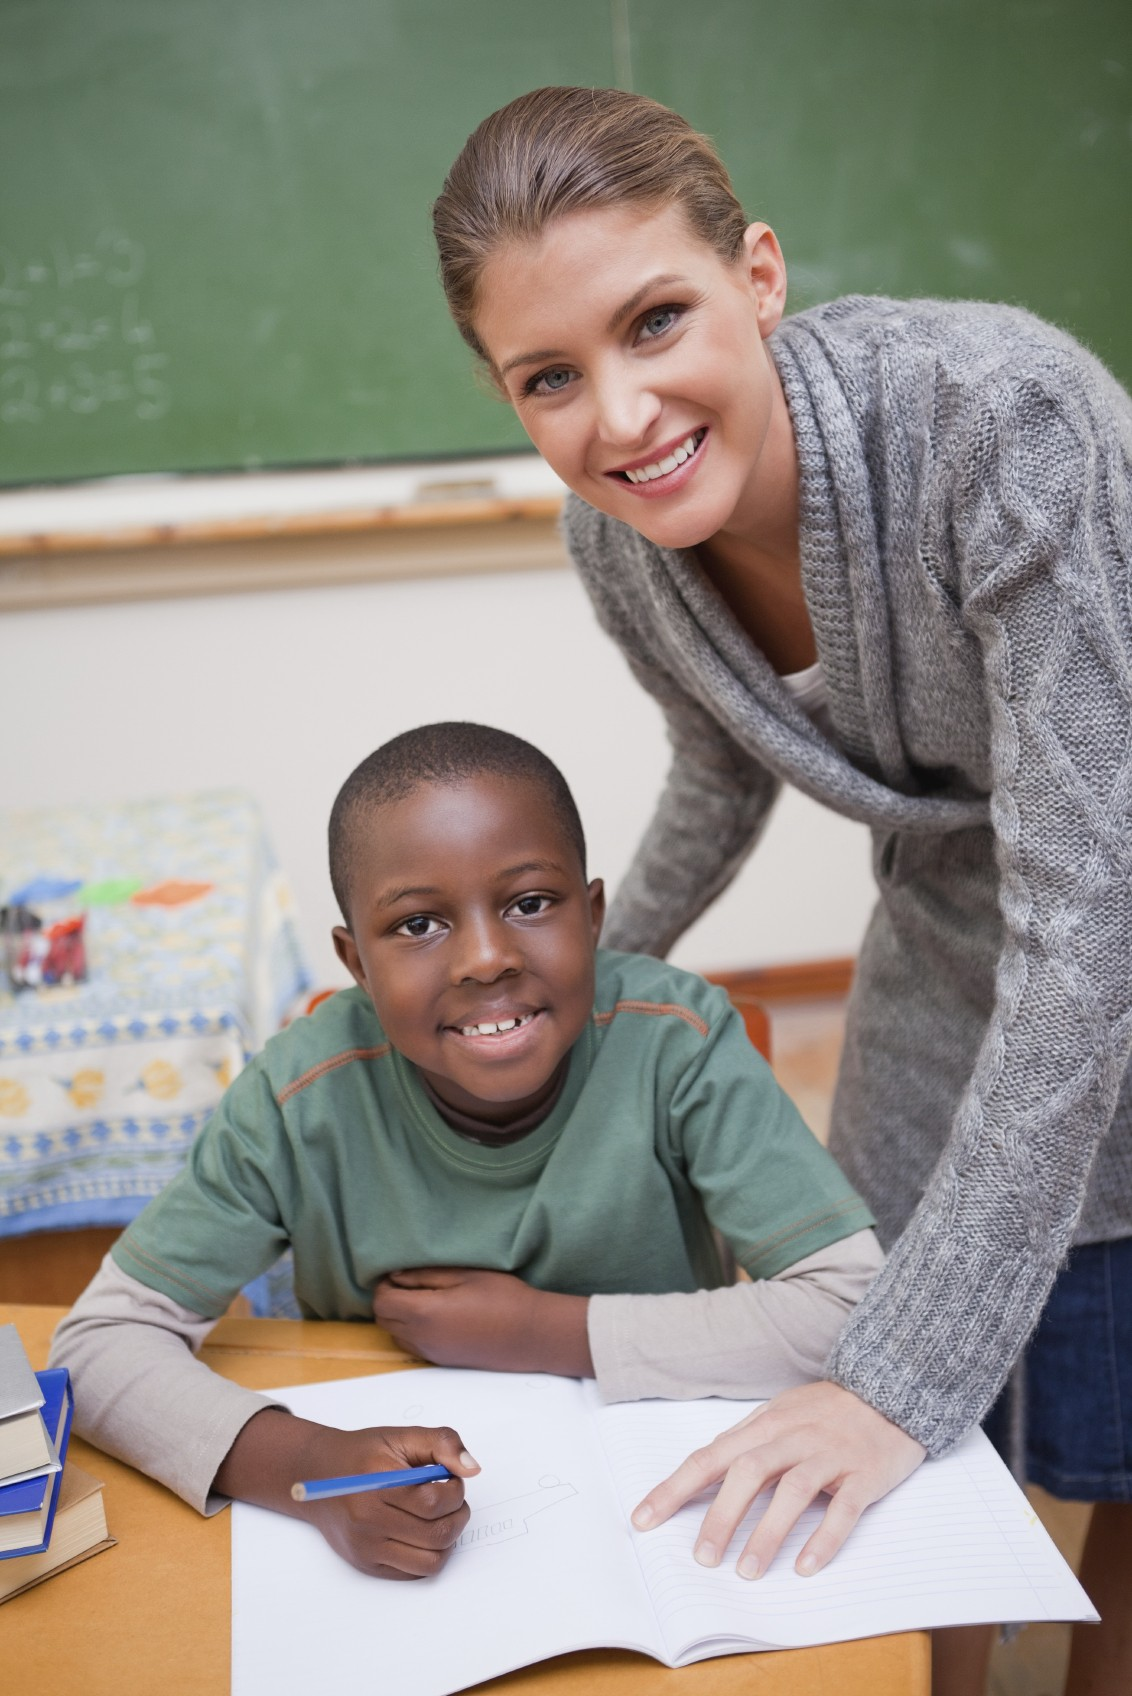 image of teacher and boy in classroom